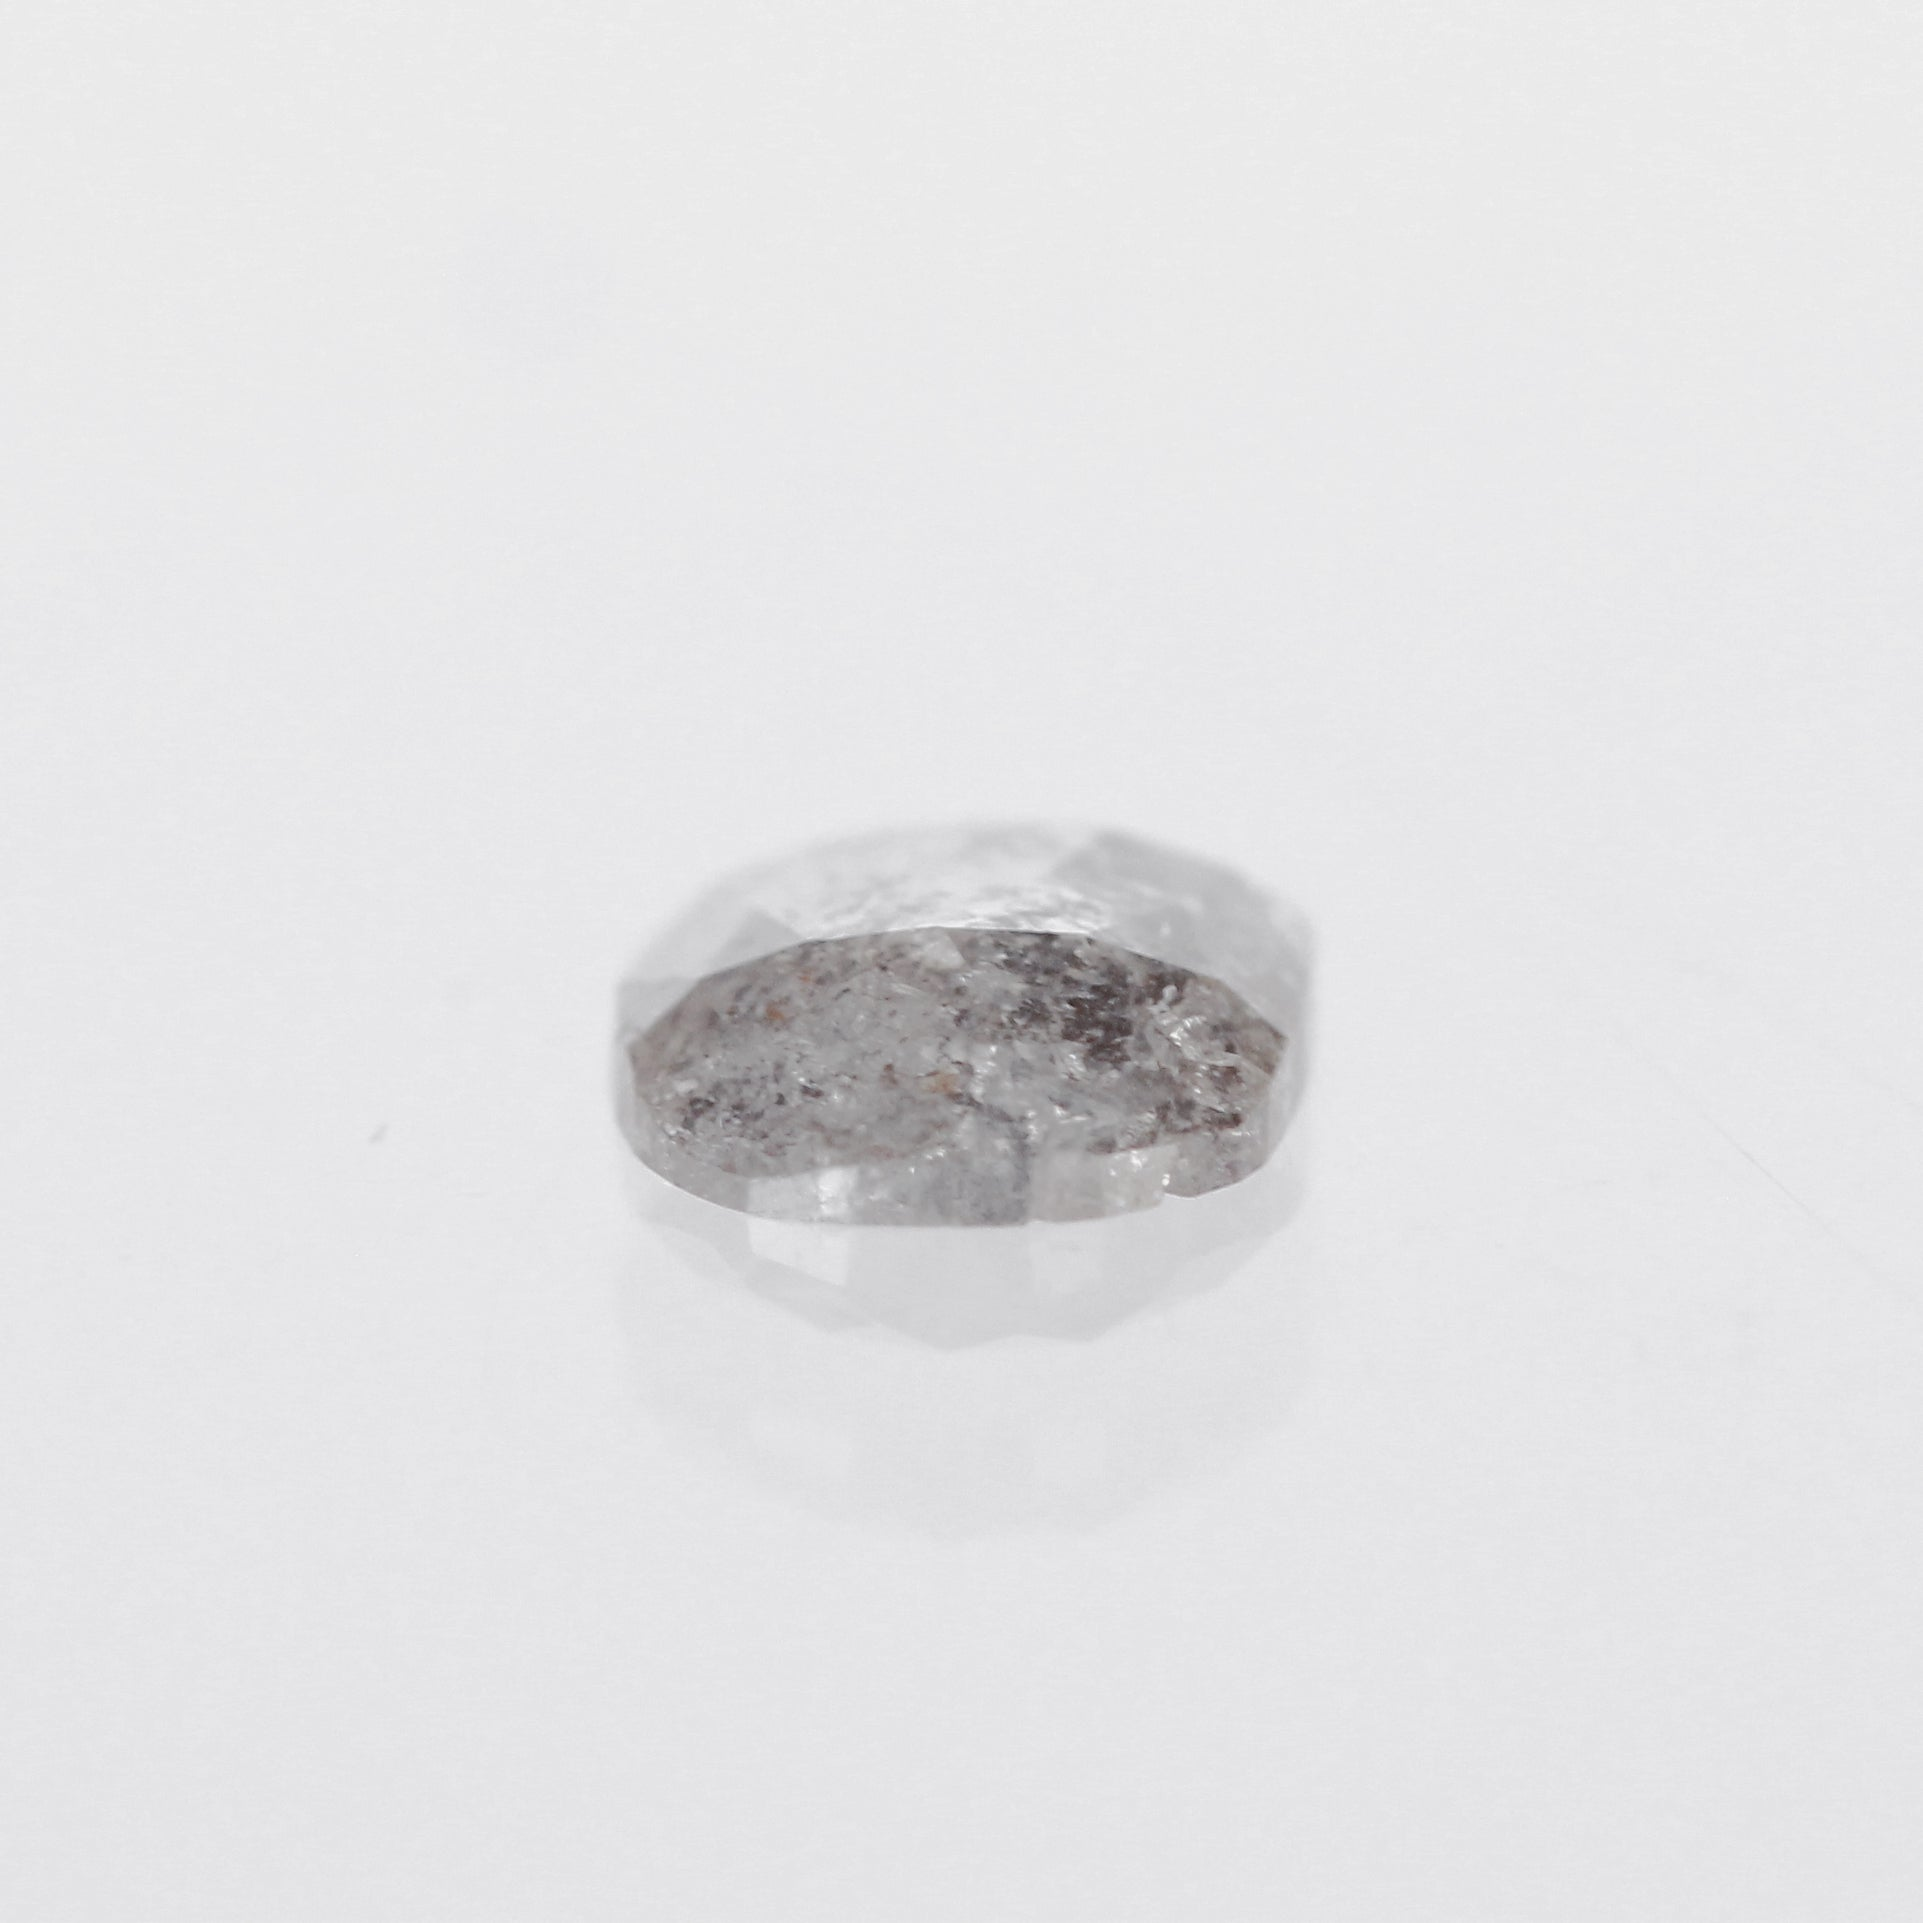 .78 Carat Oval Celestial Diamond® for Custom Work - Inventory Code RO78 - Celestial Diamonds ® by Midwinter Co.